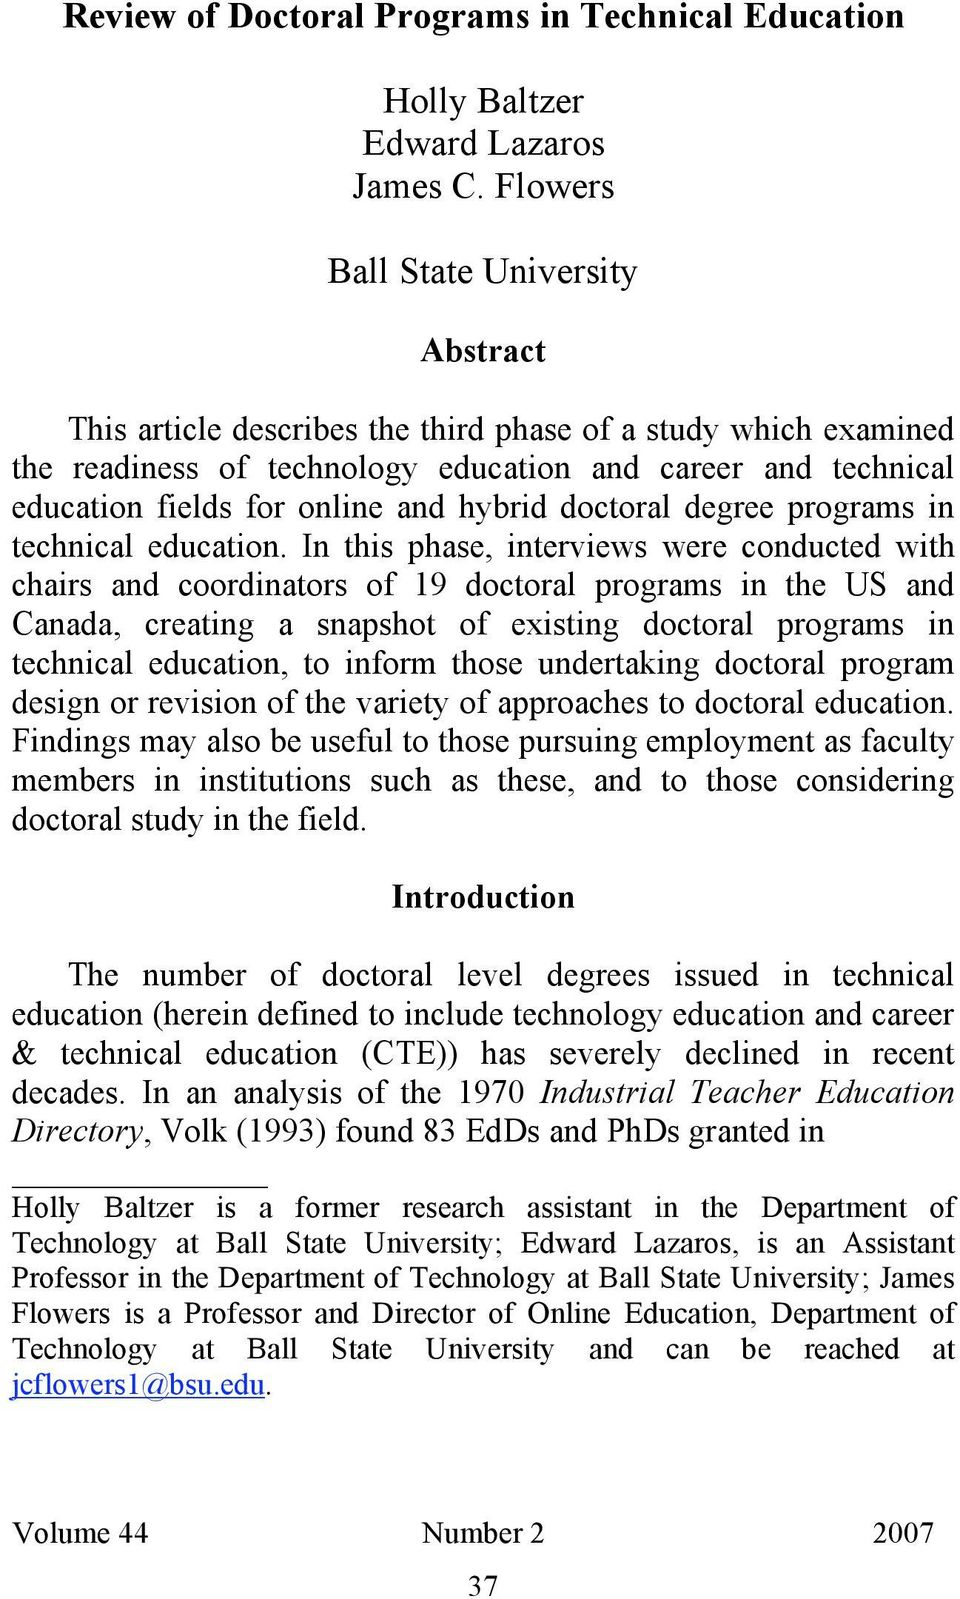 hybrid doctoral degree programs in technical education.